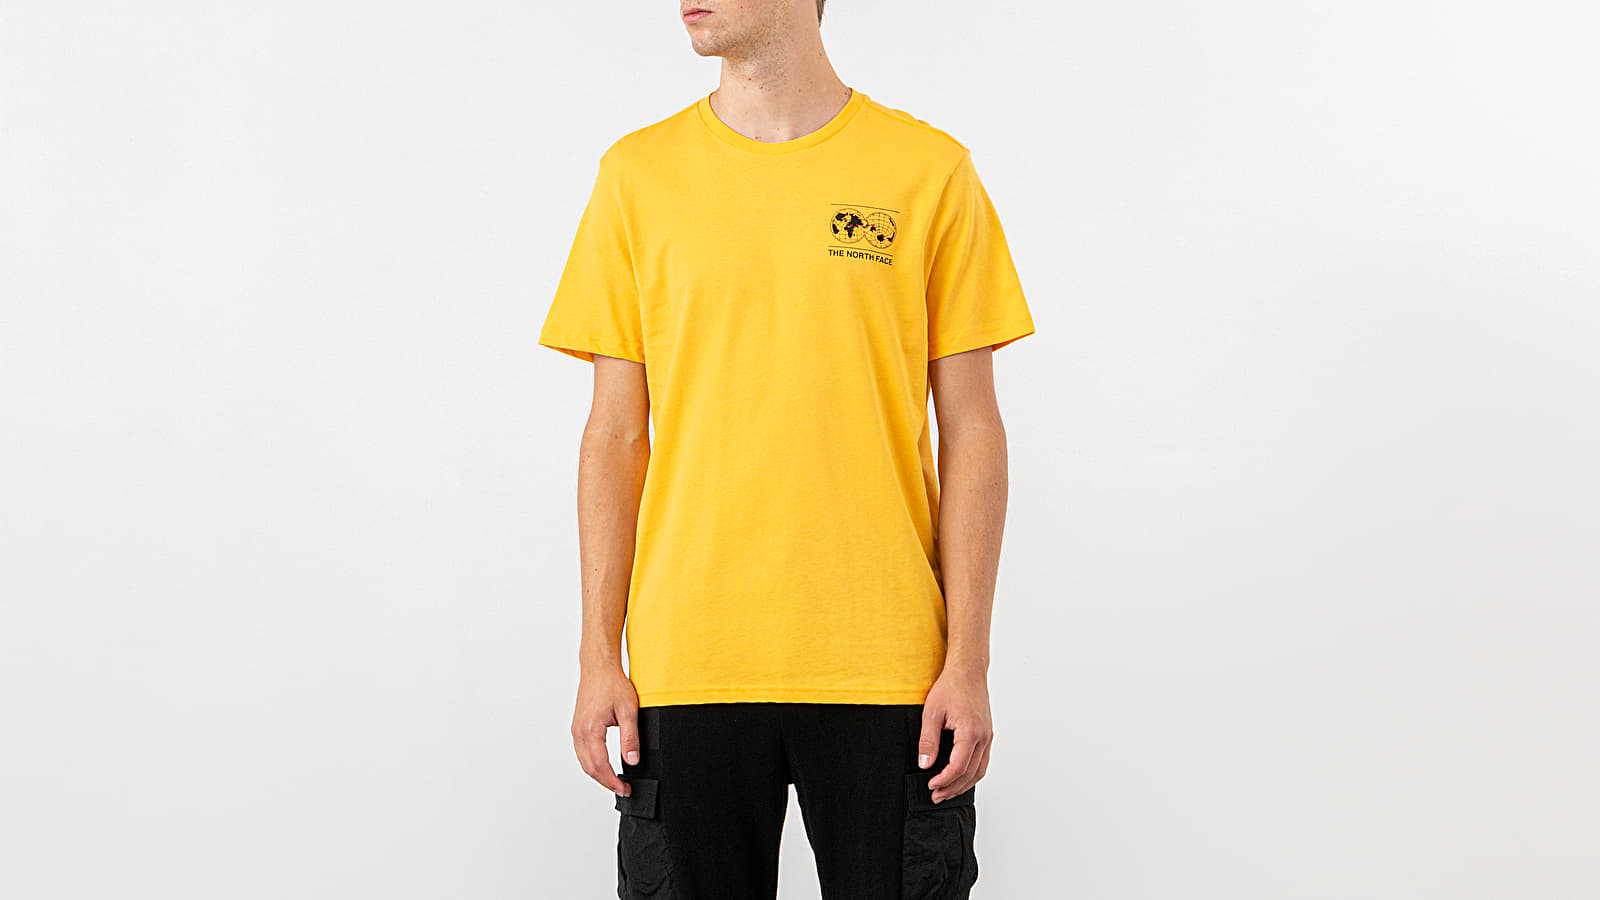 The North Face 7 Summits Tee